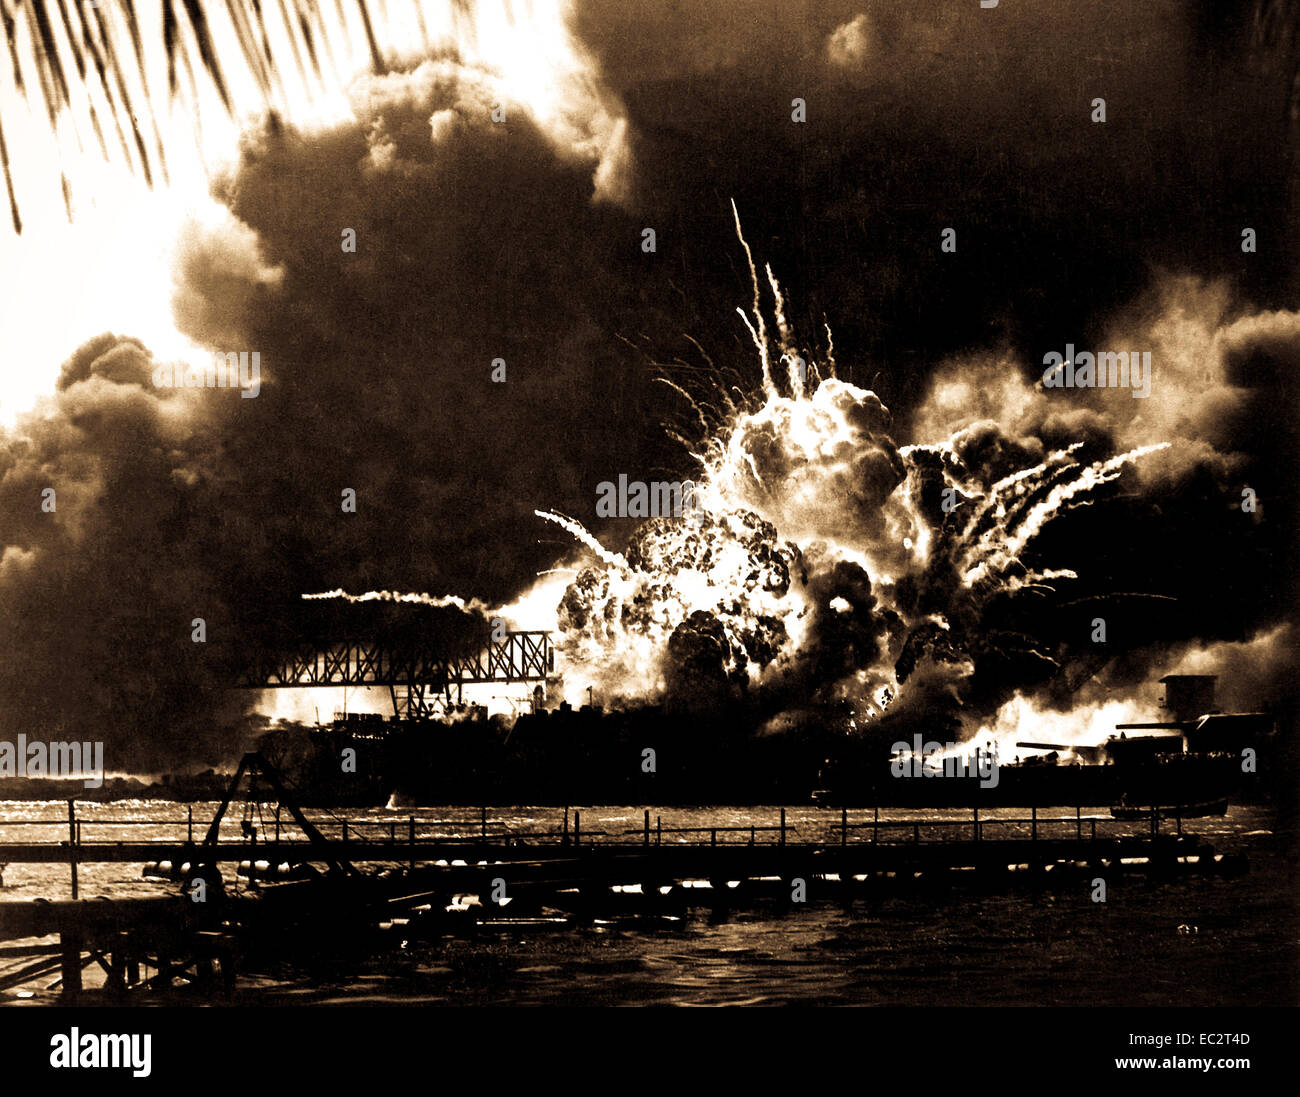 USS SHAW exploding during the Japanese raid on Pearl Harbor. December 7, 1941.  (Navy) Stock Photo